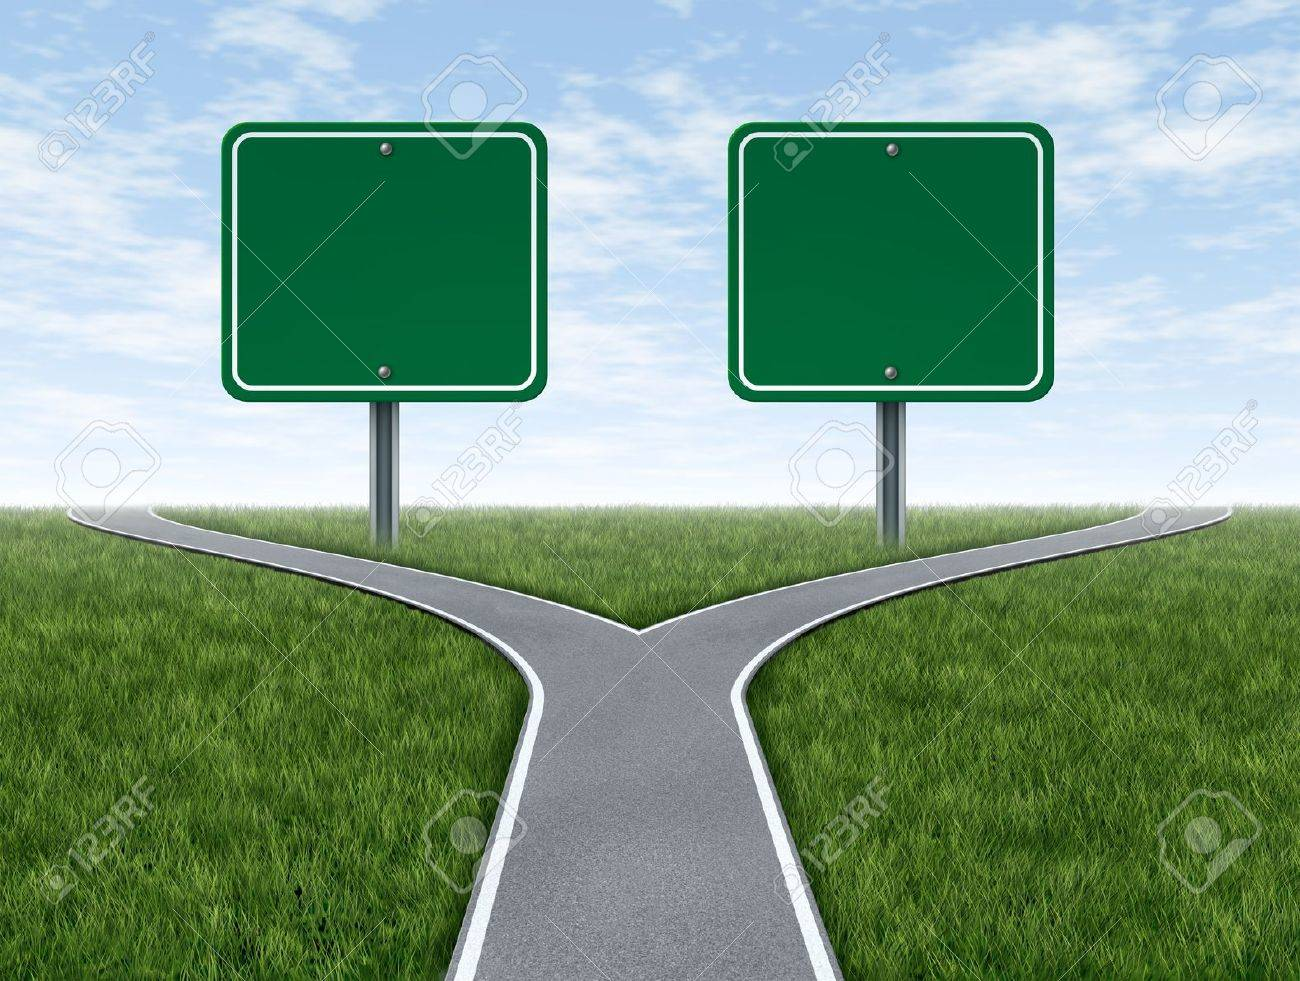 Cross roads with two blank road signs for copy space as a business concept and strategy symbol representing the difficult choices and challenges when selecting the right strategic path for financial planning - 18982392